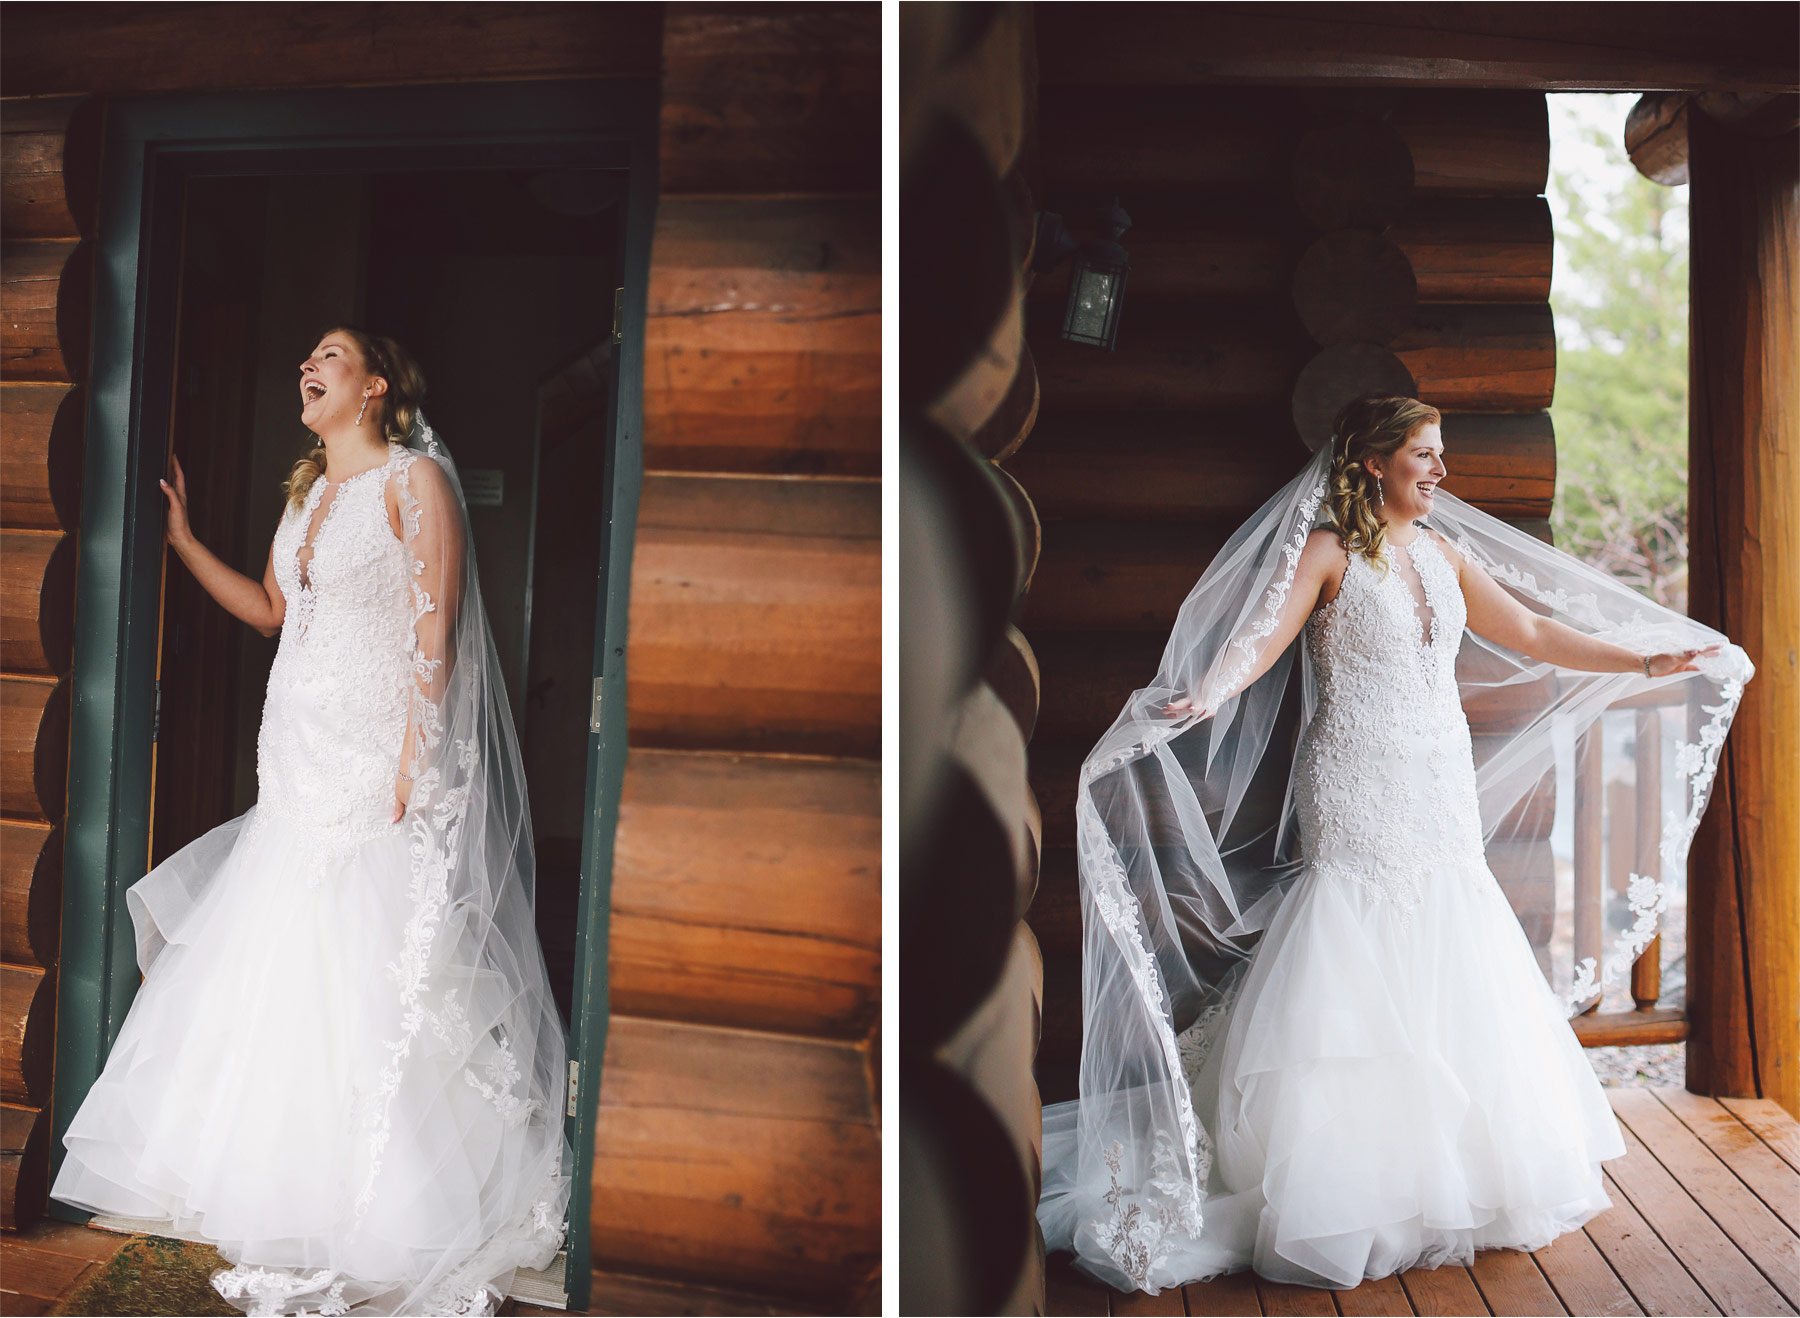 05-Minnesota-Wedding-by-Andrew-Vick-Photography-Grand-Superior-Lodge-Duluth-Two-Harbors-Bride-Dress-Veil-Laughing-Veronica-and-Tyler.jpg